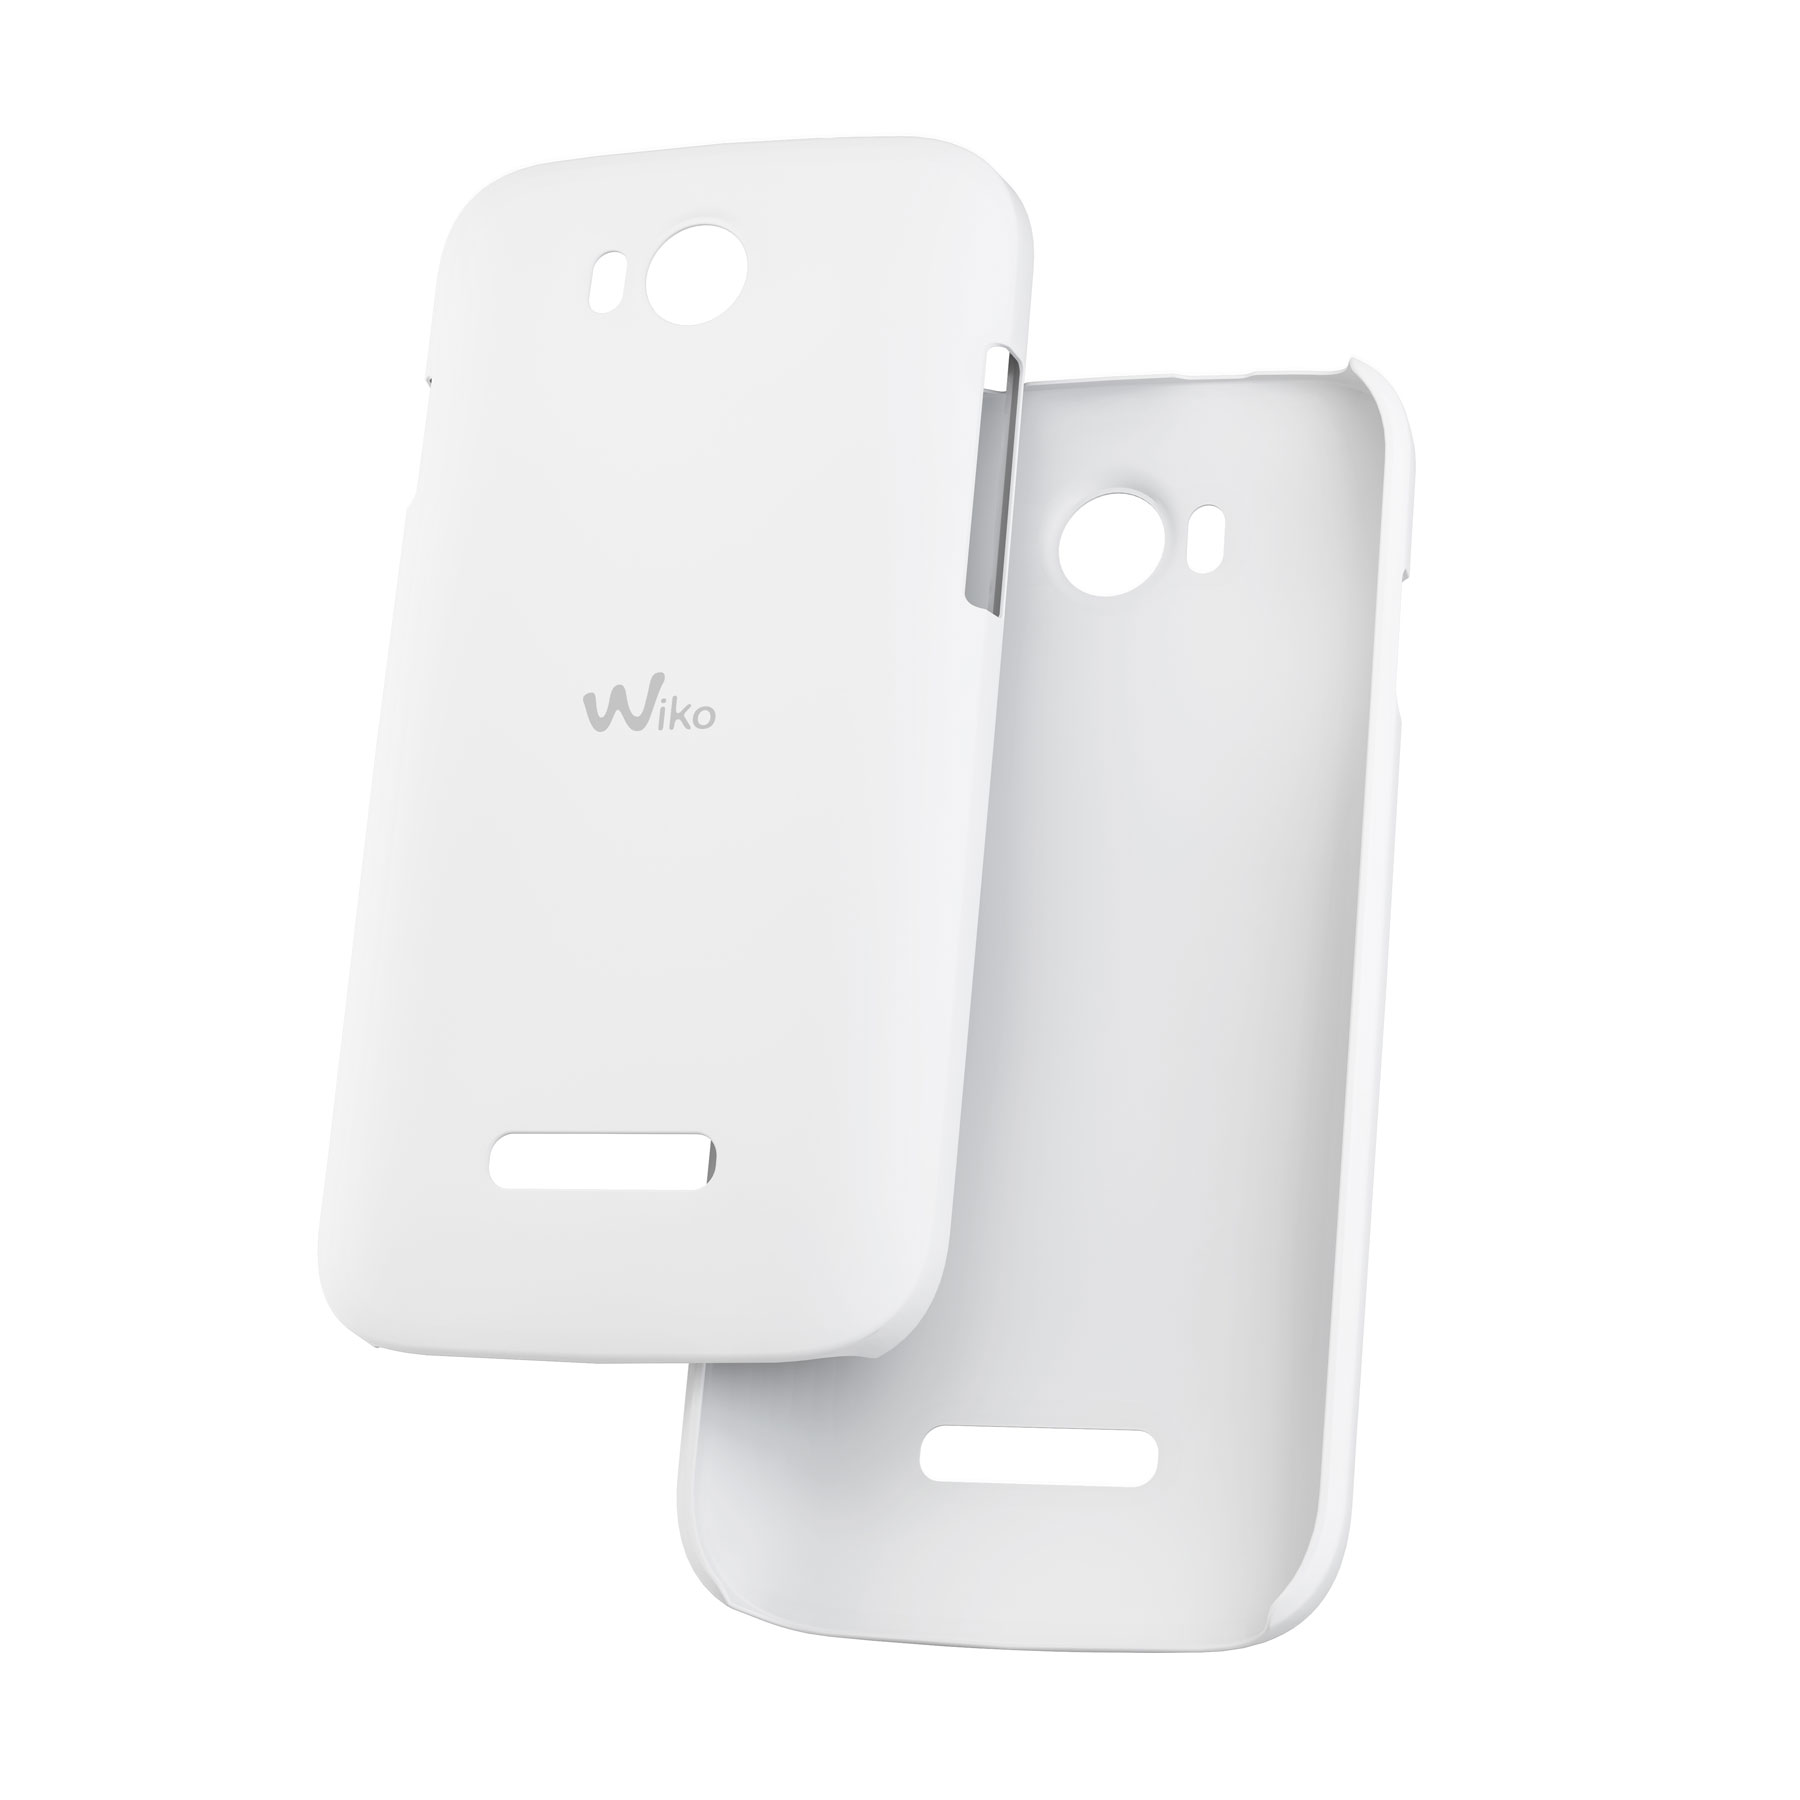 wiko coque ultra slim blanc wiko iggy etui t l phone wiko sur. Black Bedroom Furniture Sets. Home Design Ideas